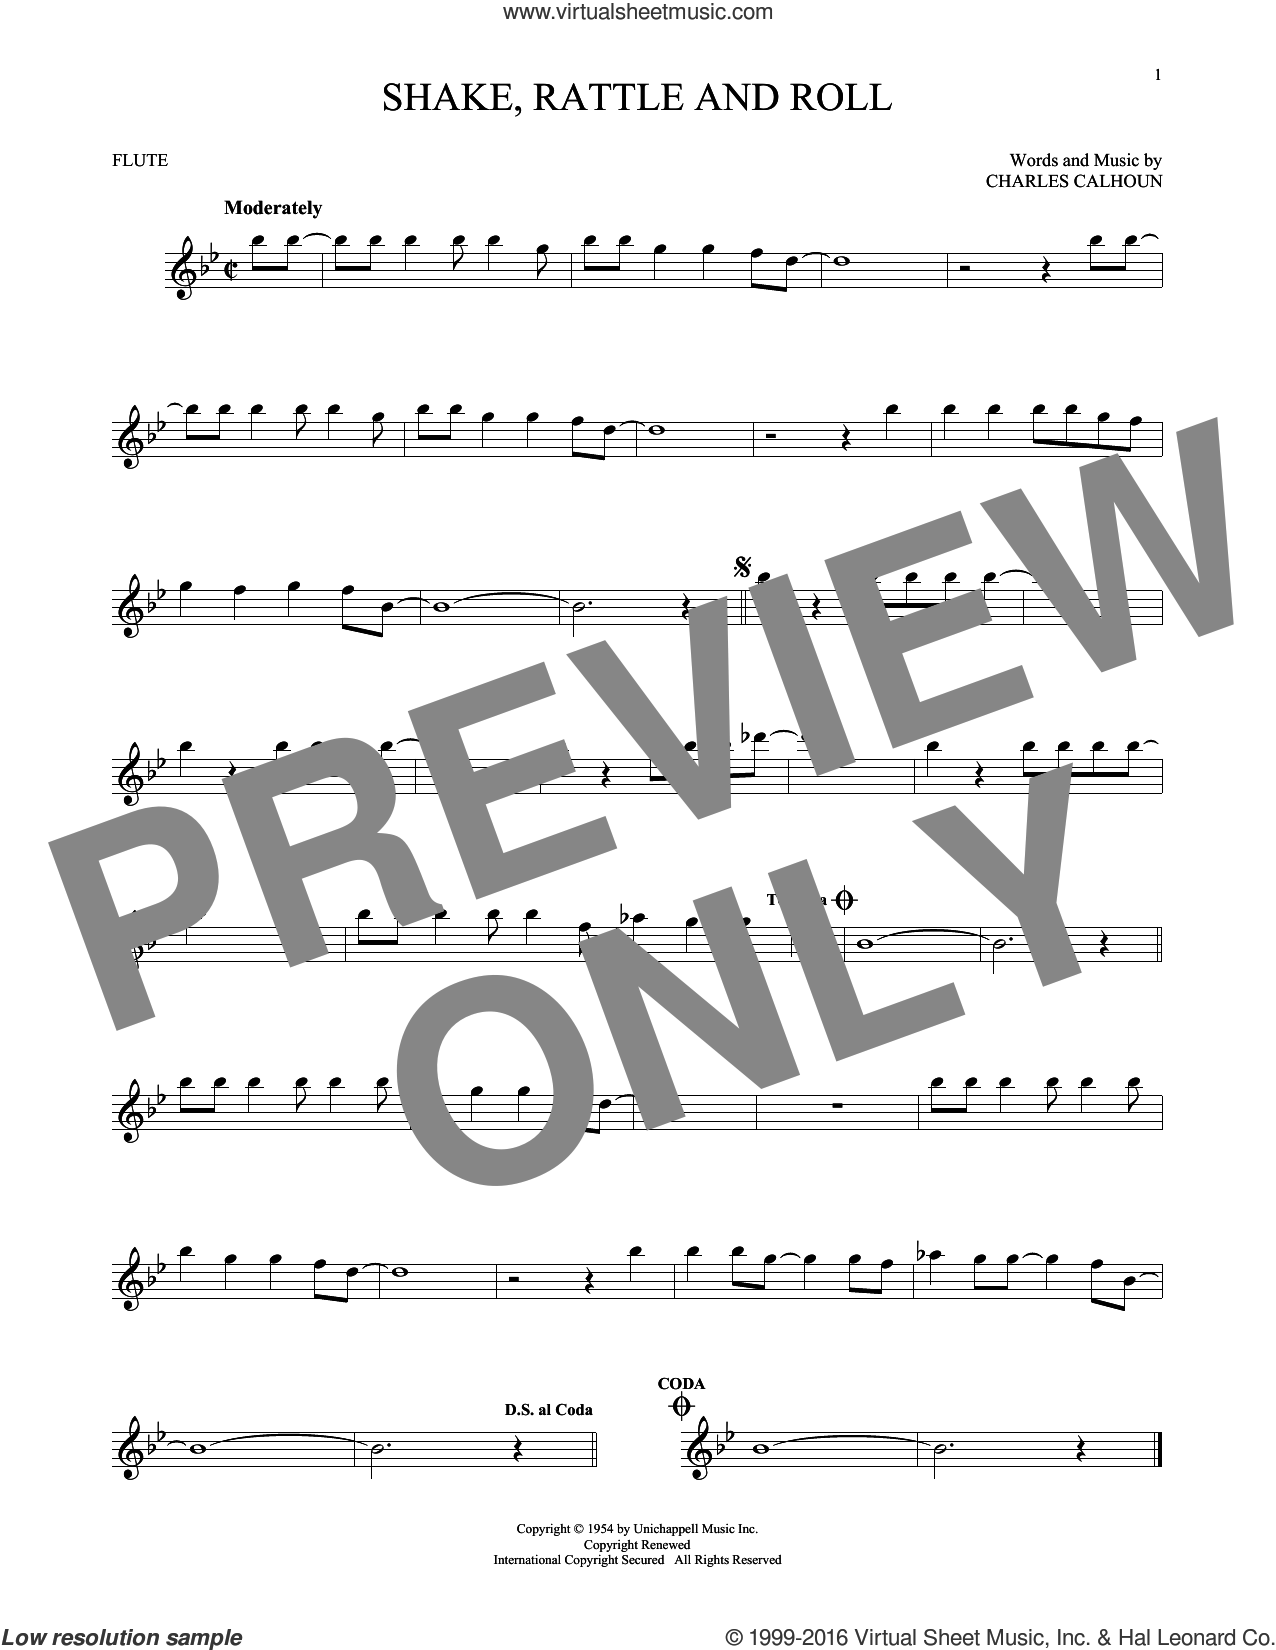 Shake, Rattle And Roll sheet music for flute solo by Bill Haley & His Comets, Arthur Conley and Charles Calhoun, intermediate. Score Image Preview.